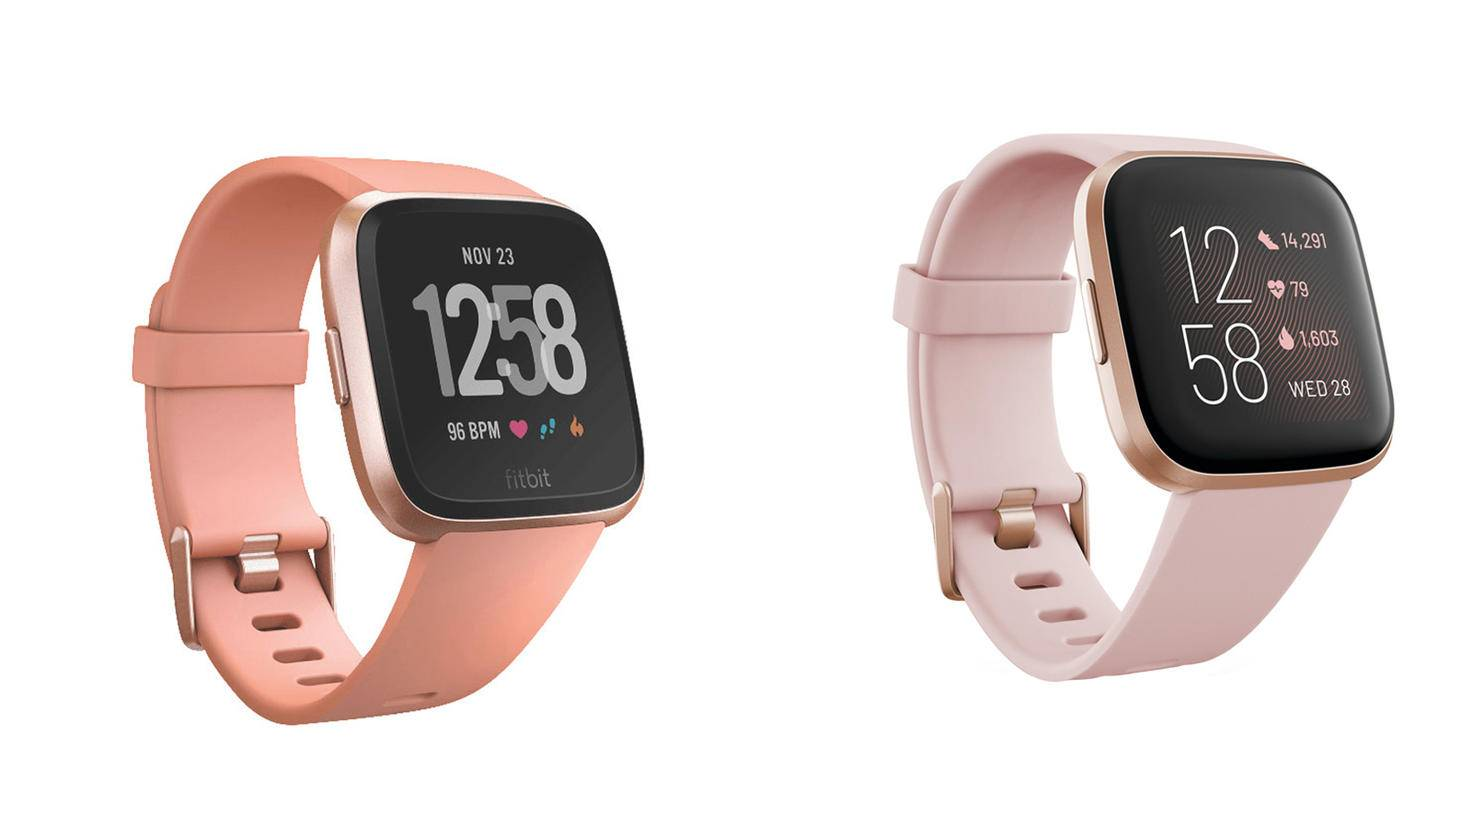 Fitbit Versa (left) and Fitbit Versa 2: The visual differences are marginal.